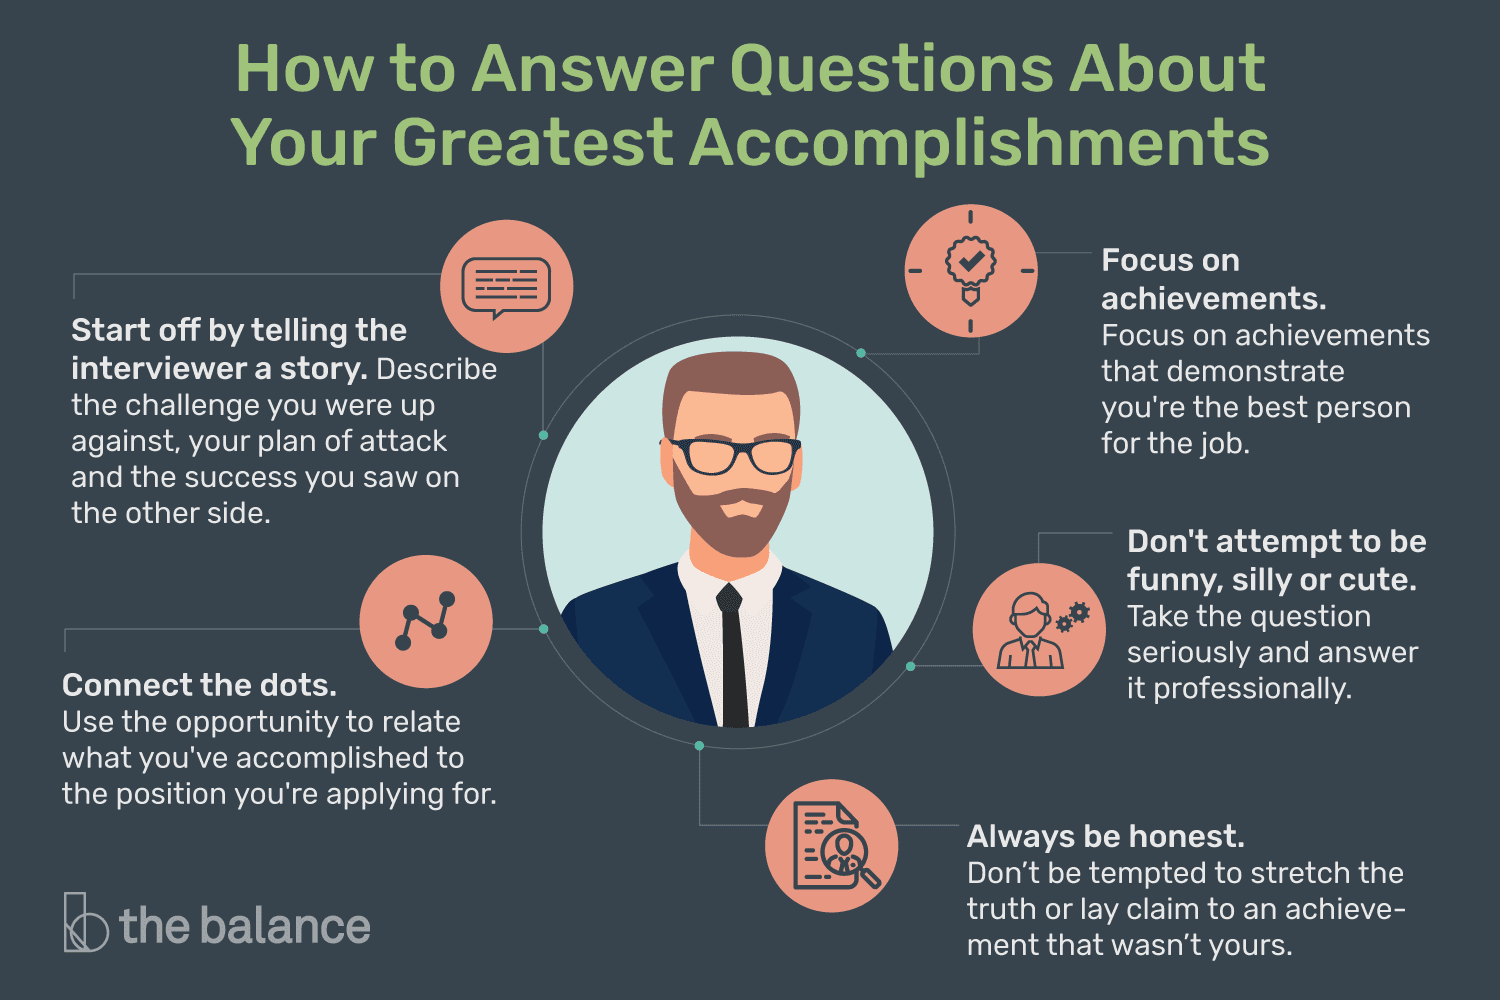 interview questions about your greatest accomplishments